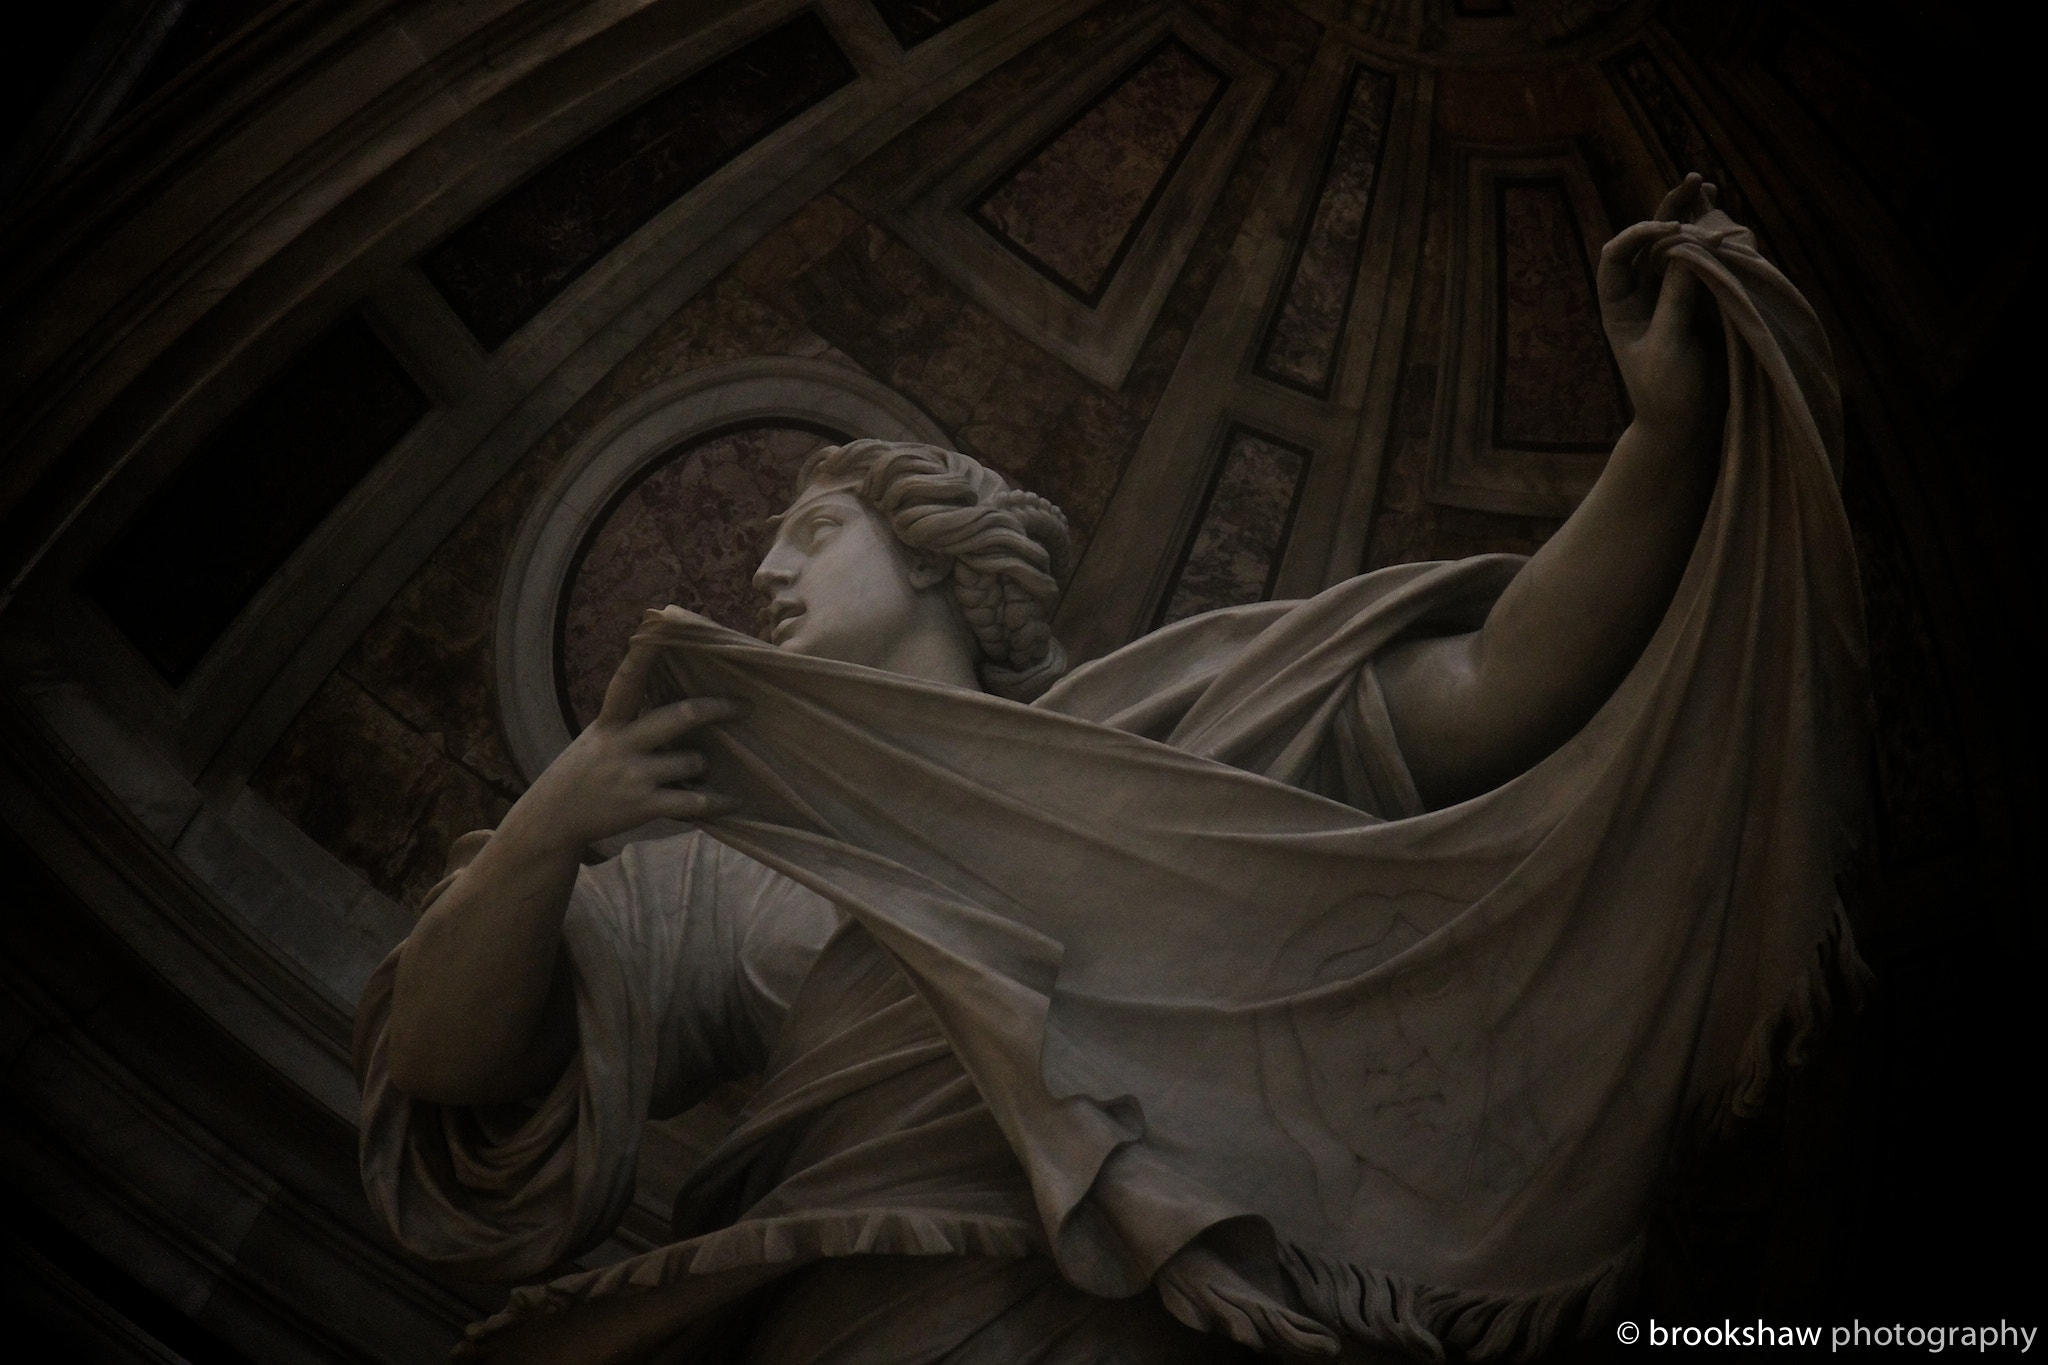 Photograph The Statue of St. Veronica by Gary Brookshaw on 500px